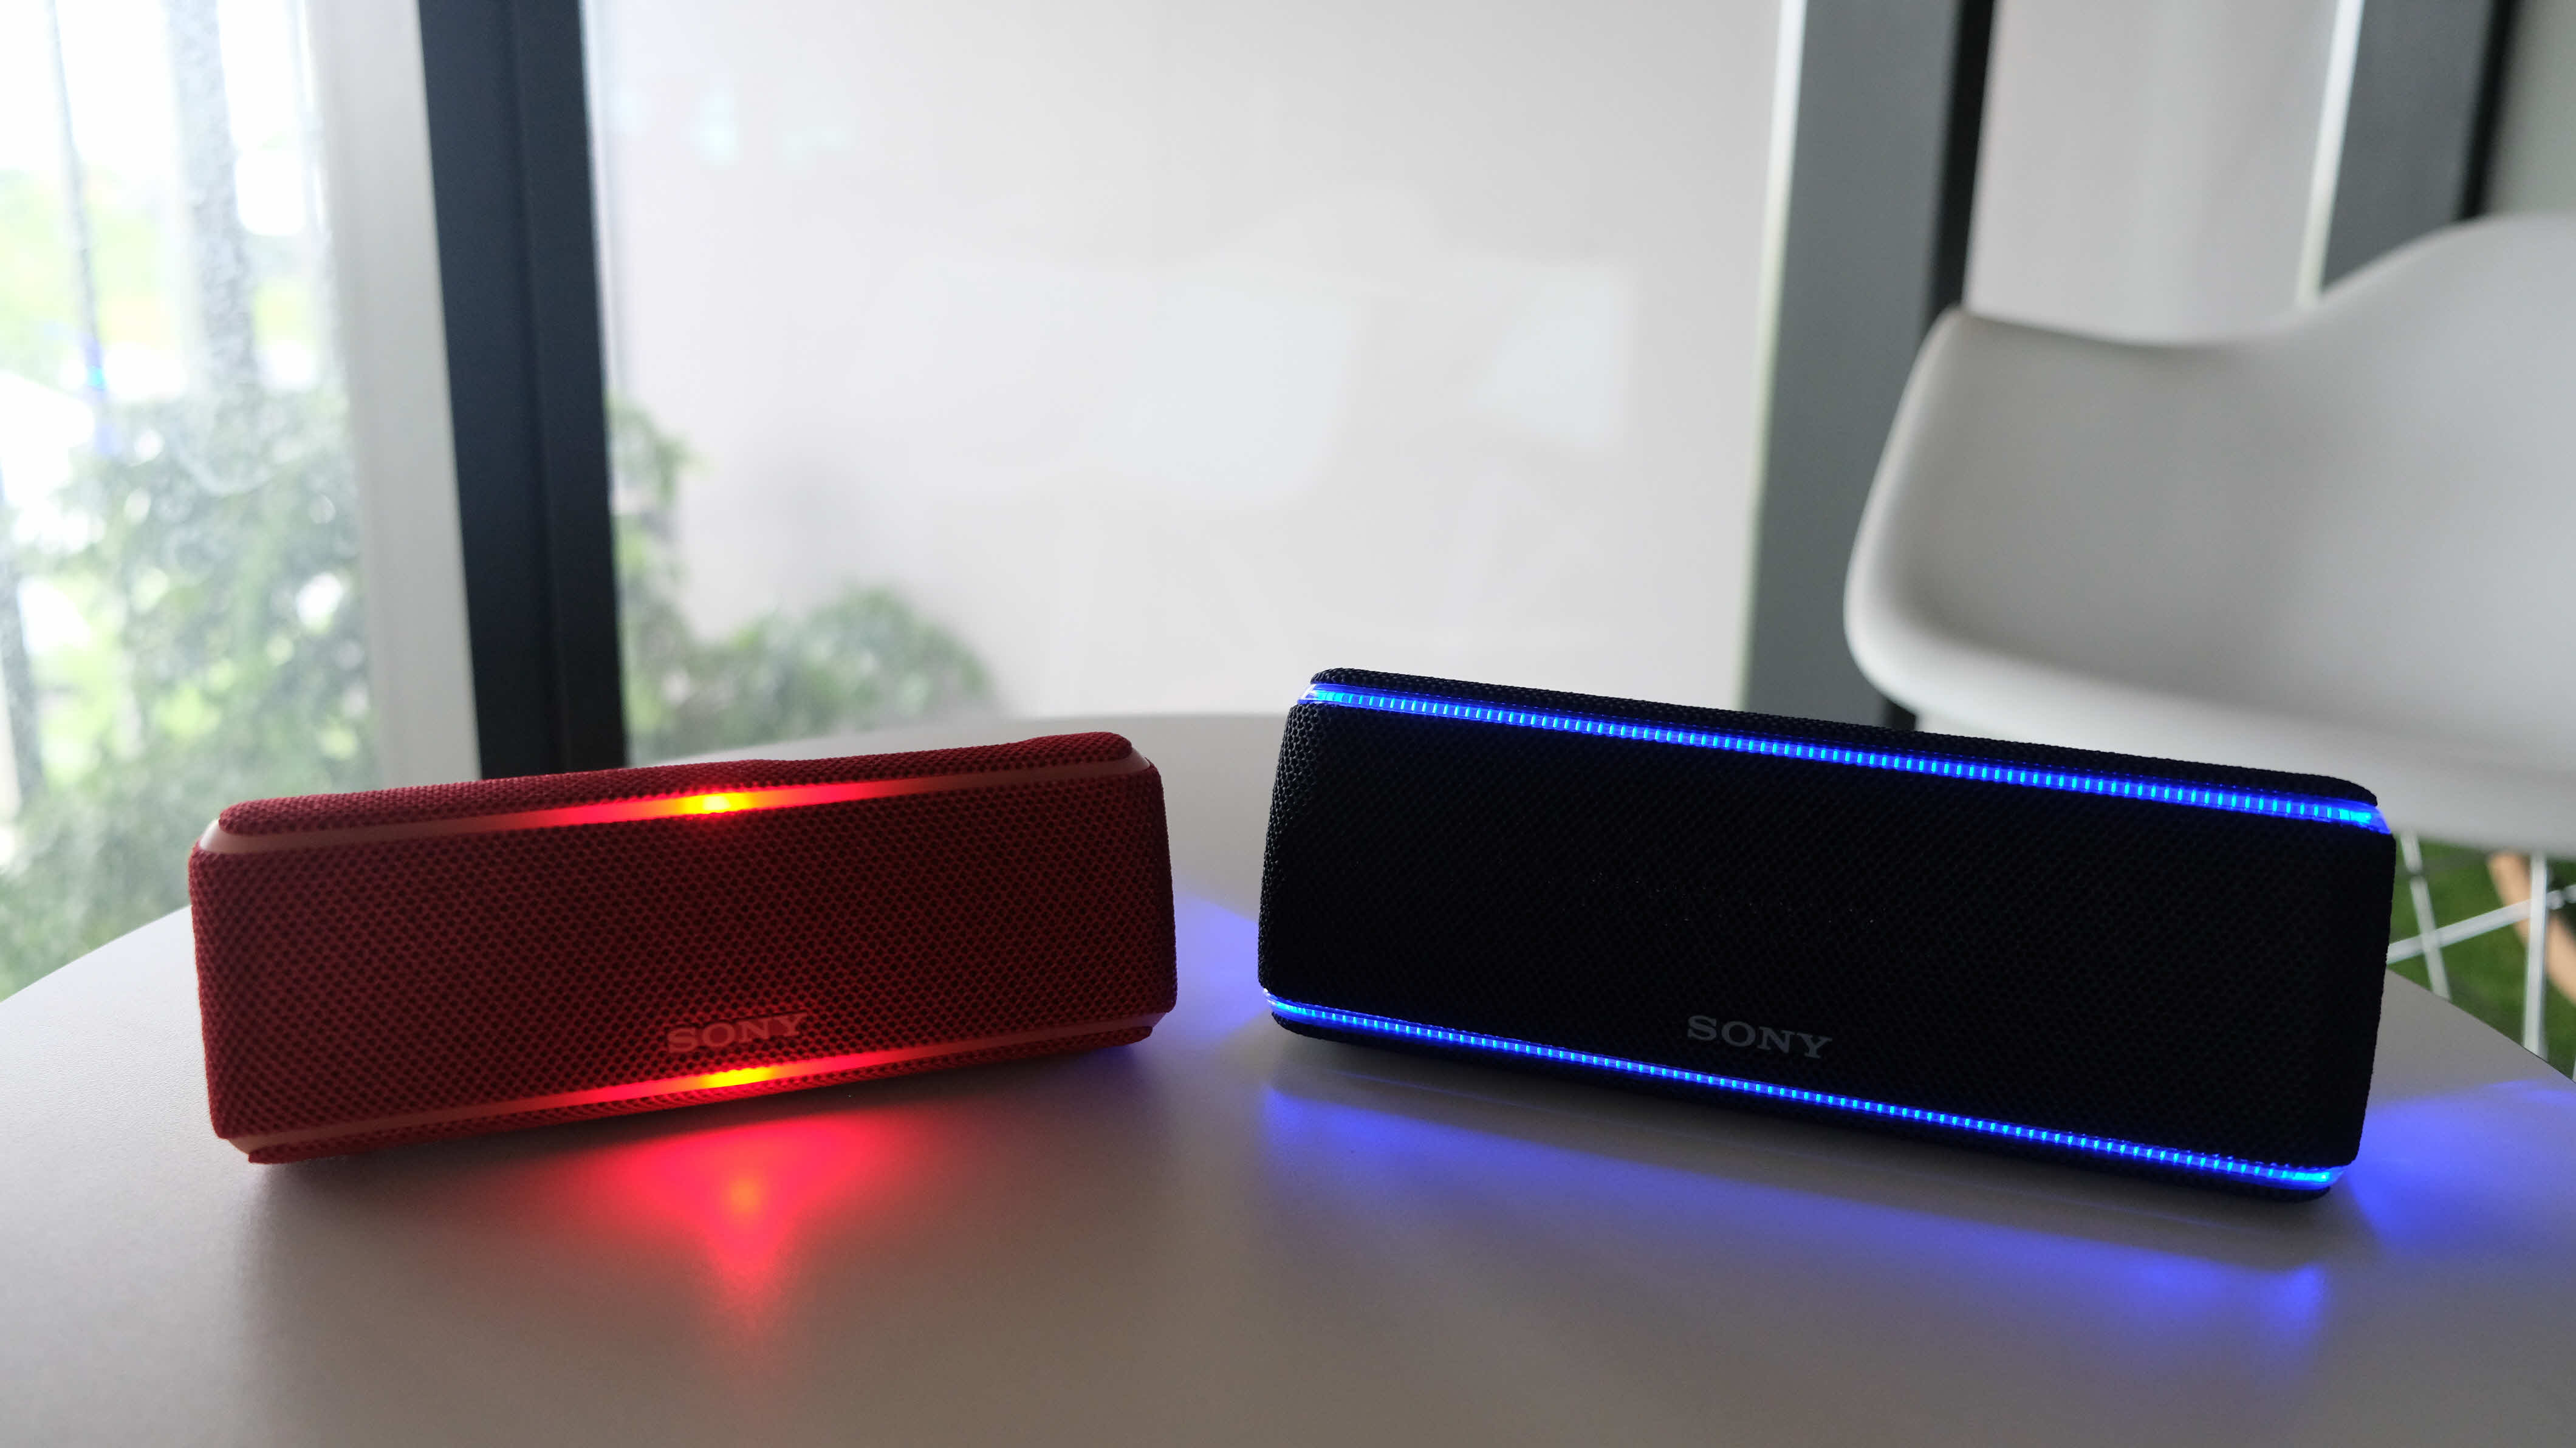 Sony Srs Xb21 Sony Srs Xb31 Blutooth Speaker Review Advertorial 015